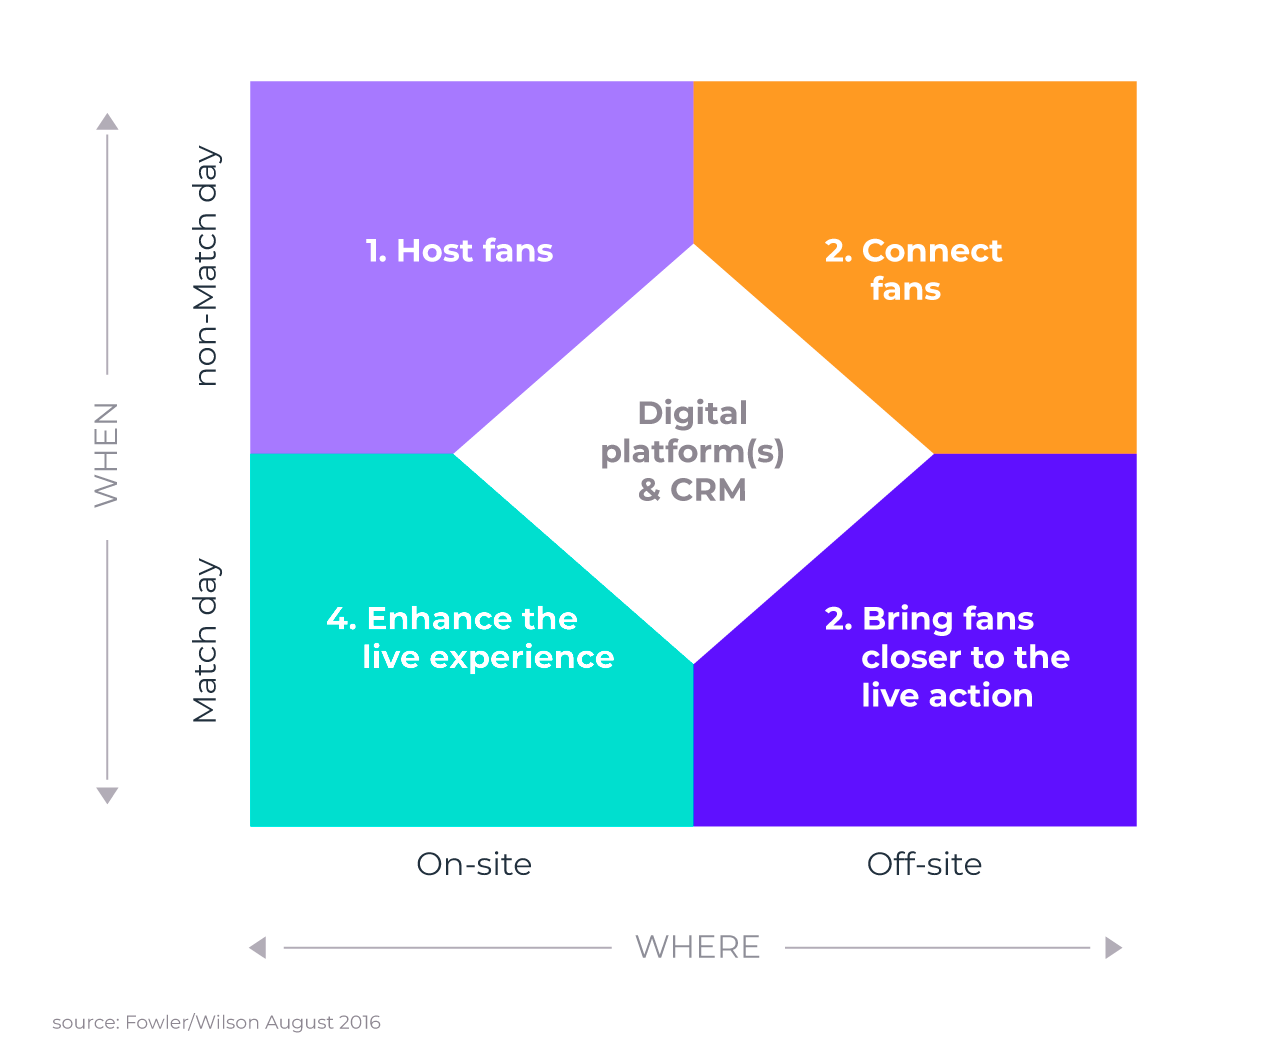 A gamification platform can boost fan loyalty by enhancing the online and offline fan experience